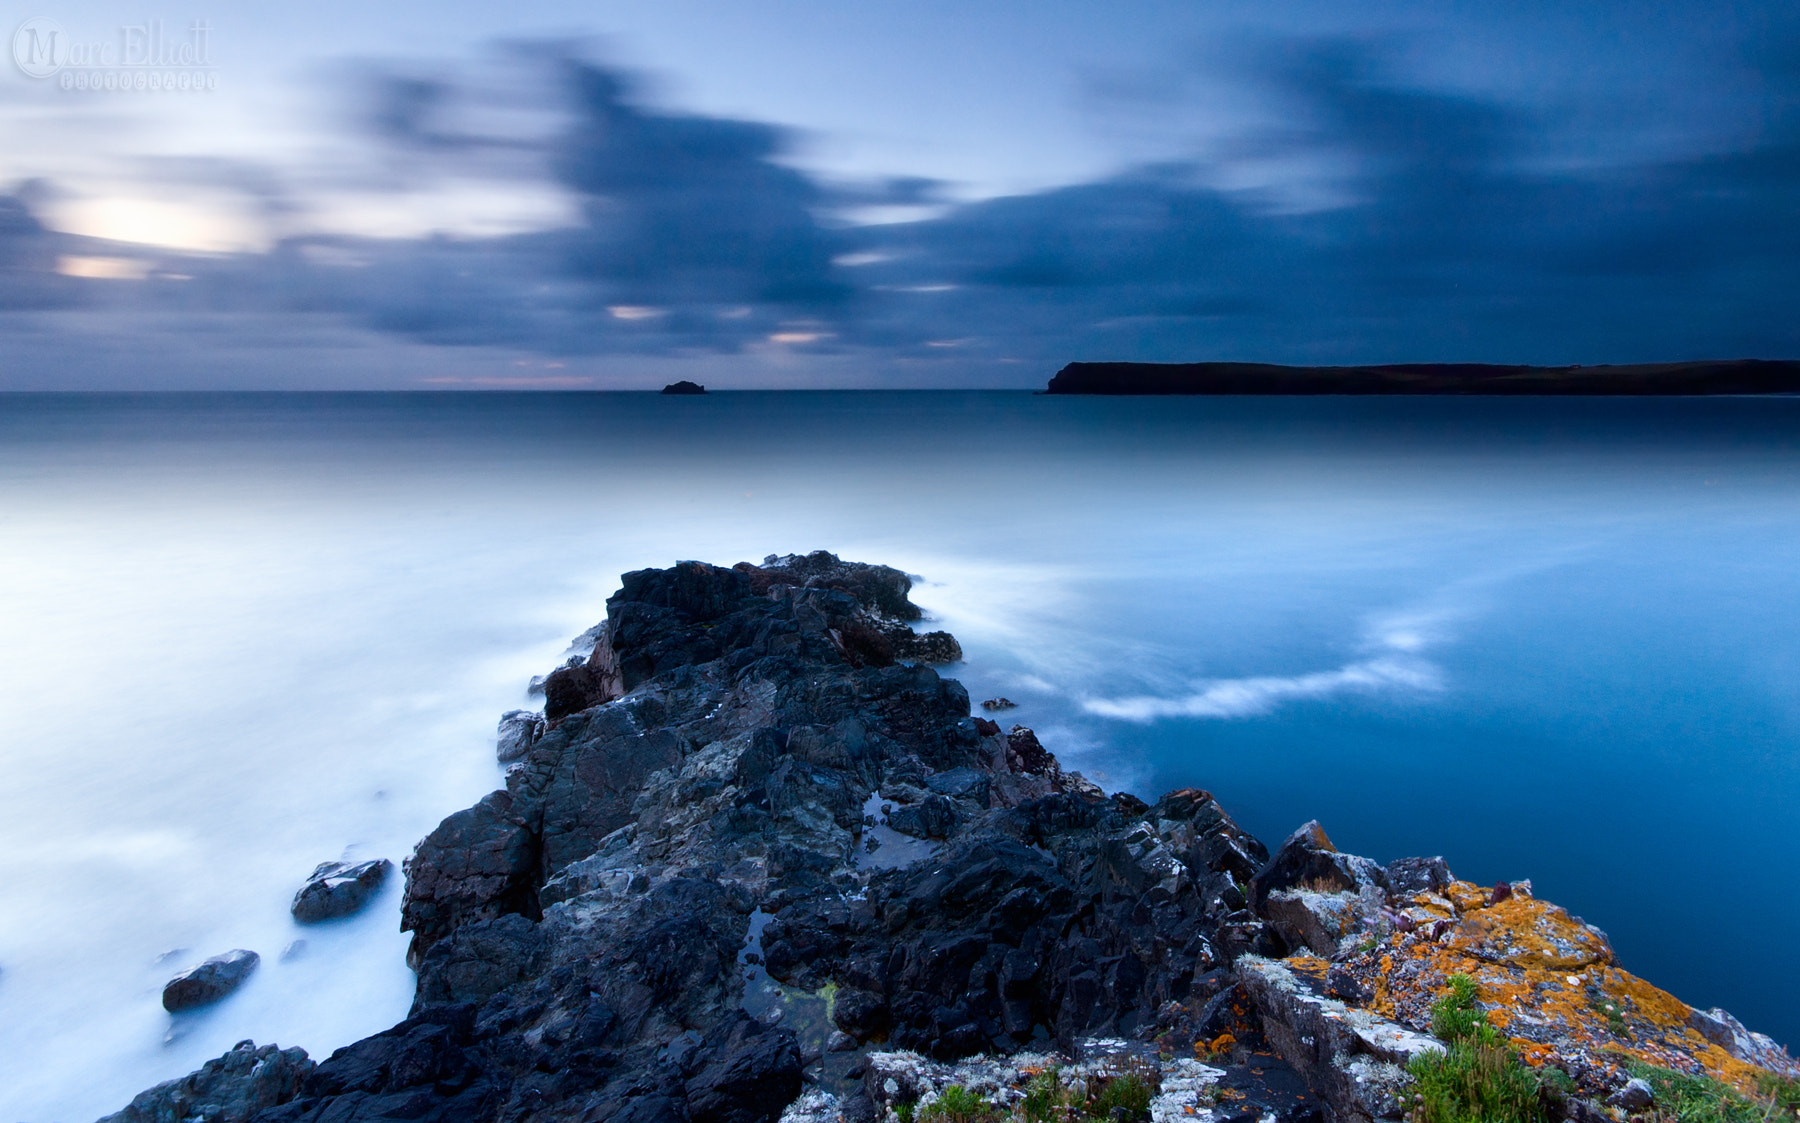 Photograph Stepper Point by Marc Elliott on 500px